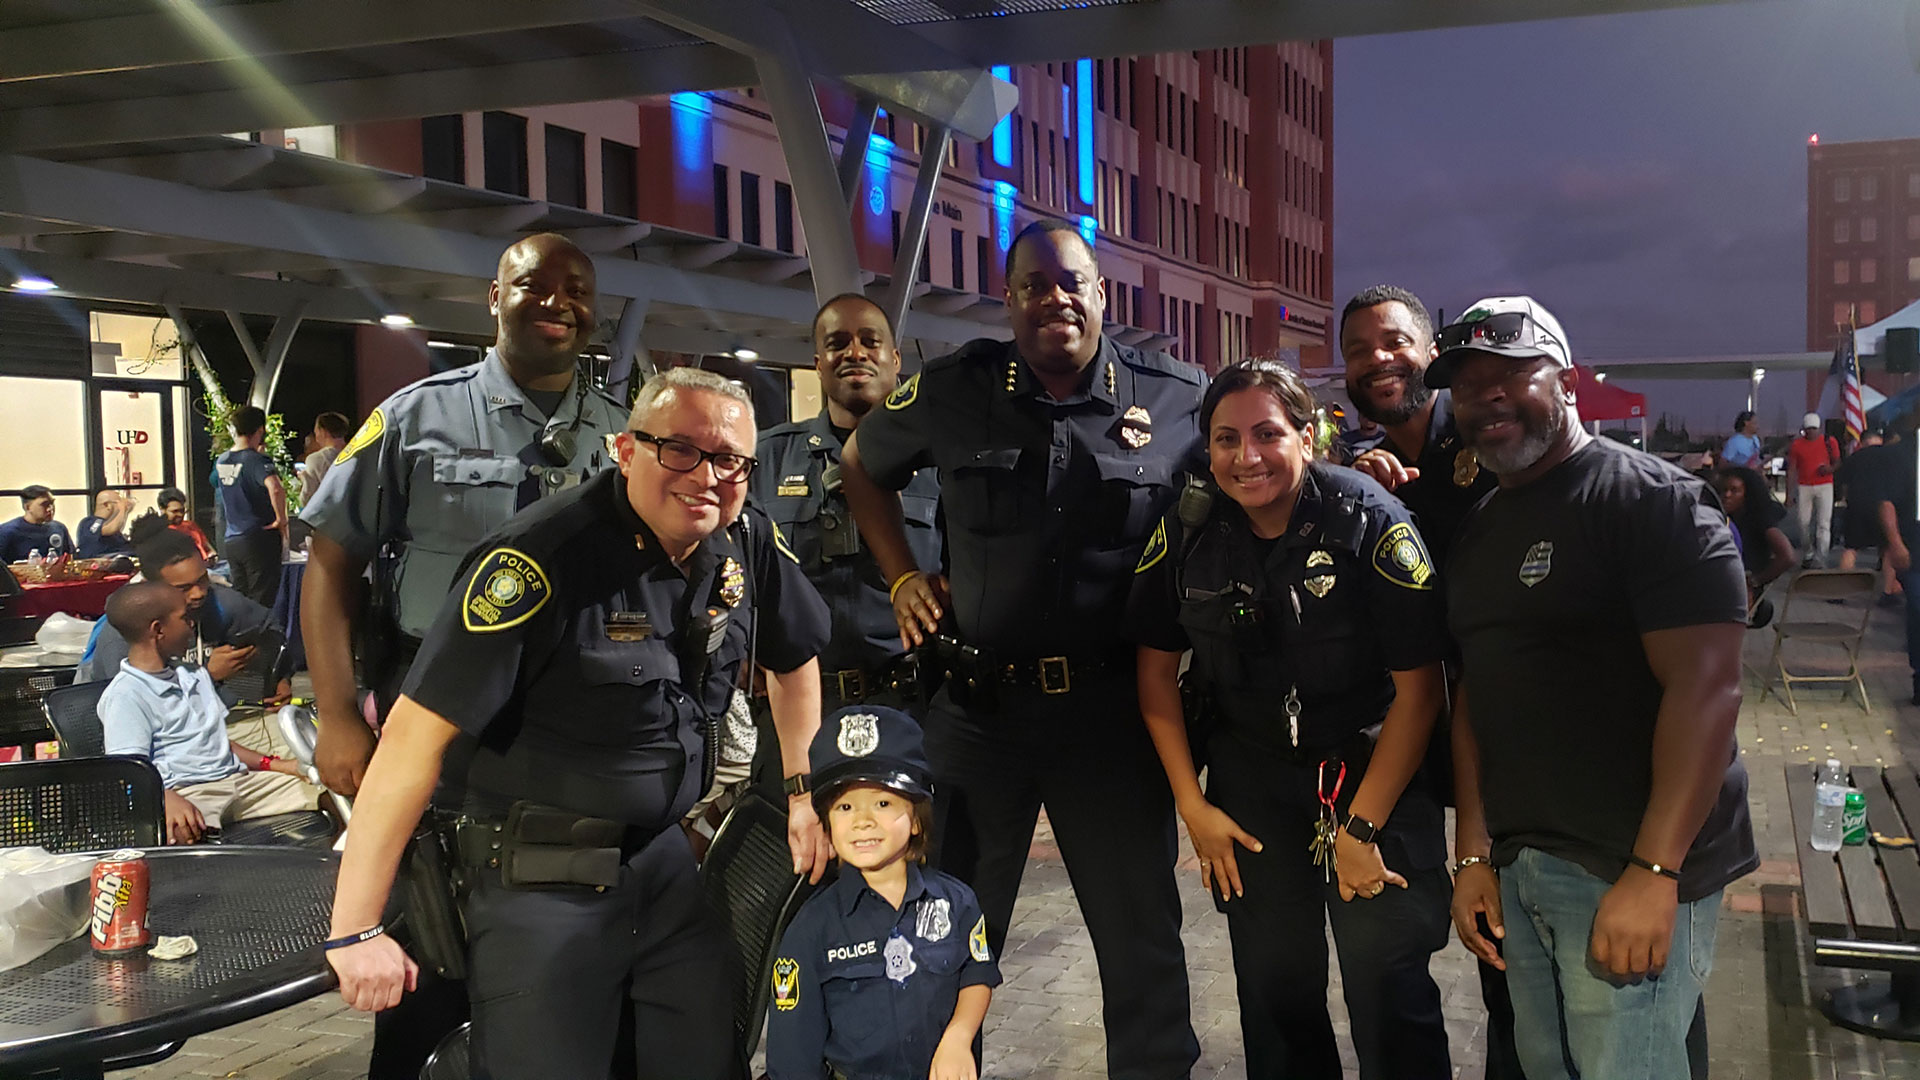 Group Photo of Police Chief and Officers with a young child dress as an officer